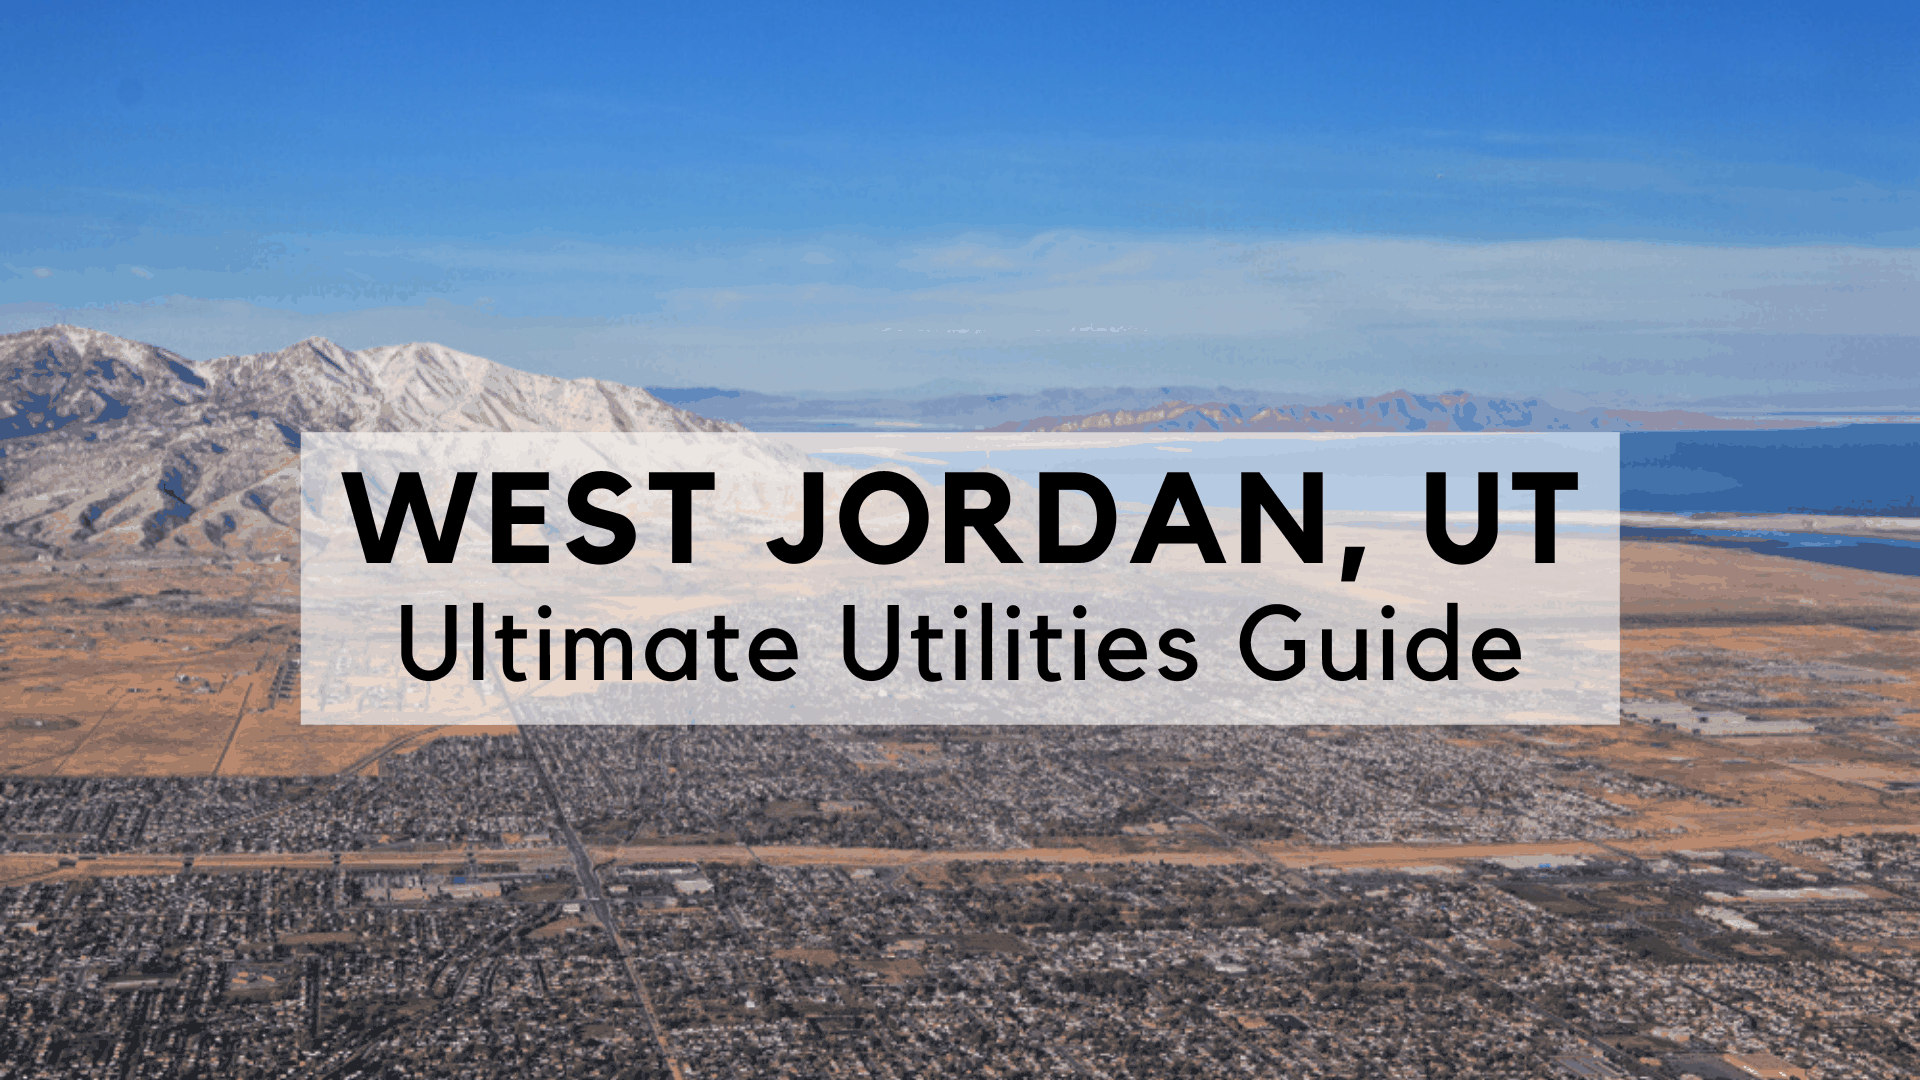 West Jordan, UT - Ultimate Utilities Guide